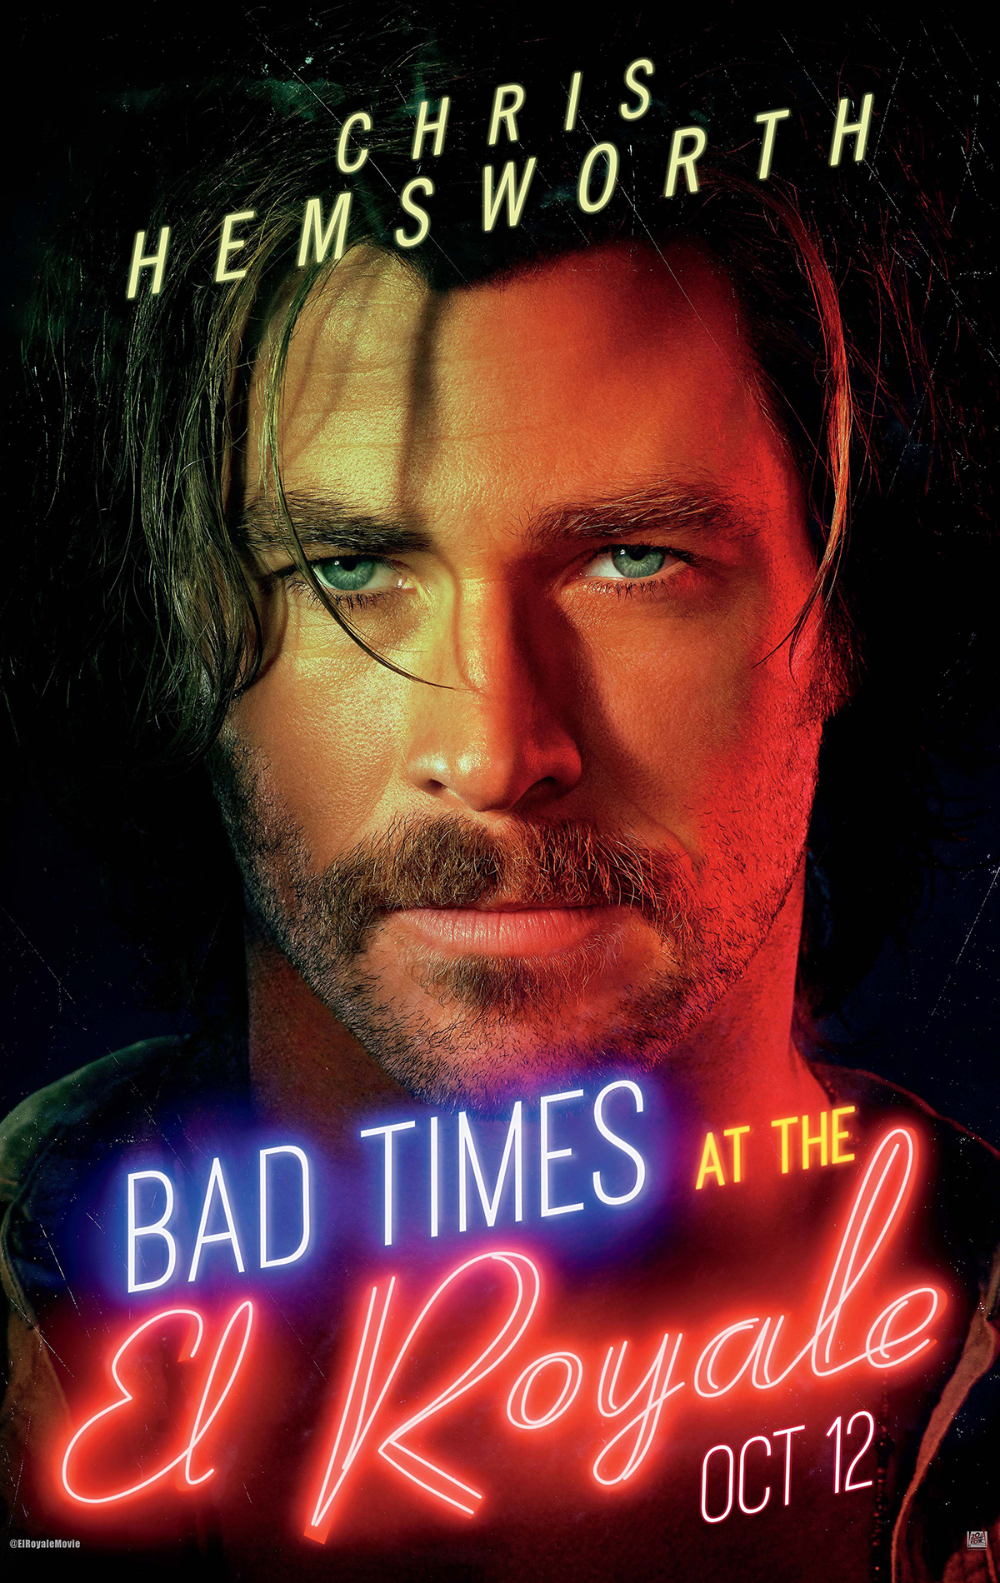 Bad Times At The El Royale Poster Gallery Bad Timing Chris Hemsworth Free Movies Online